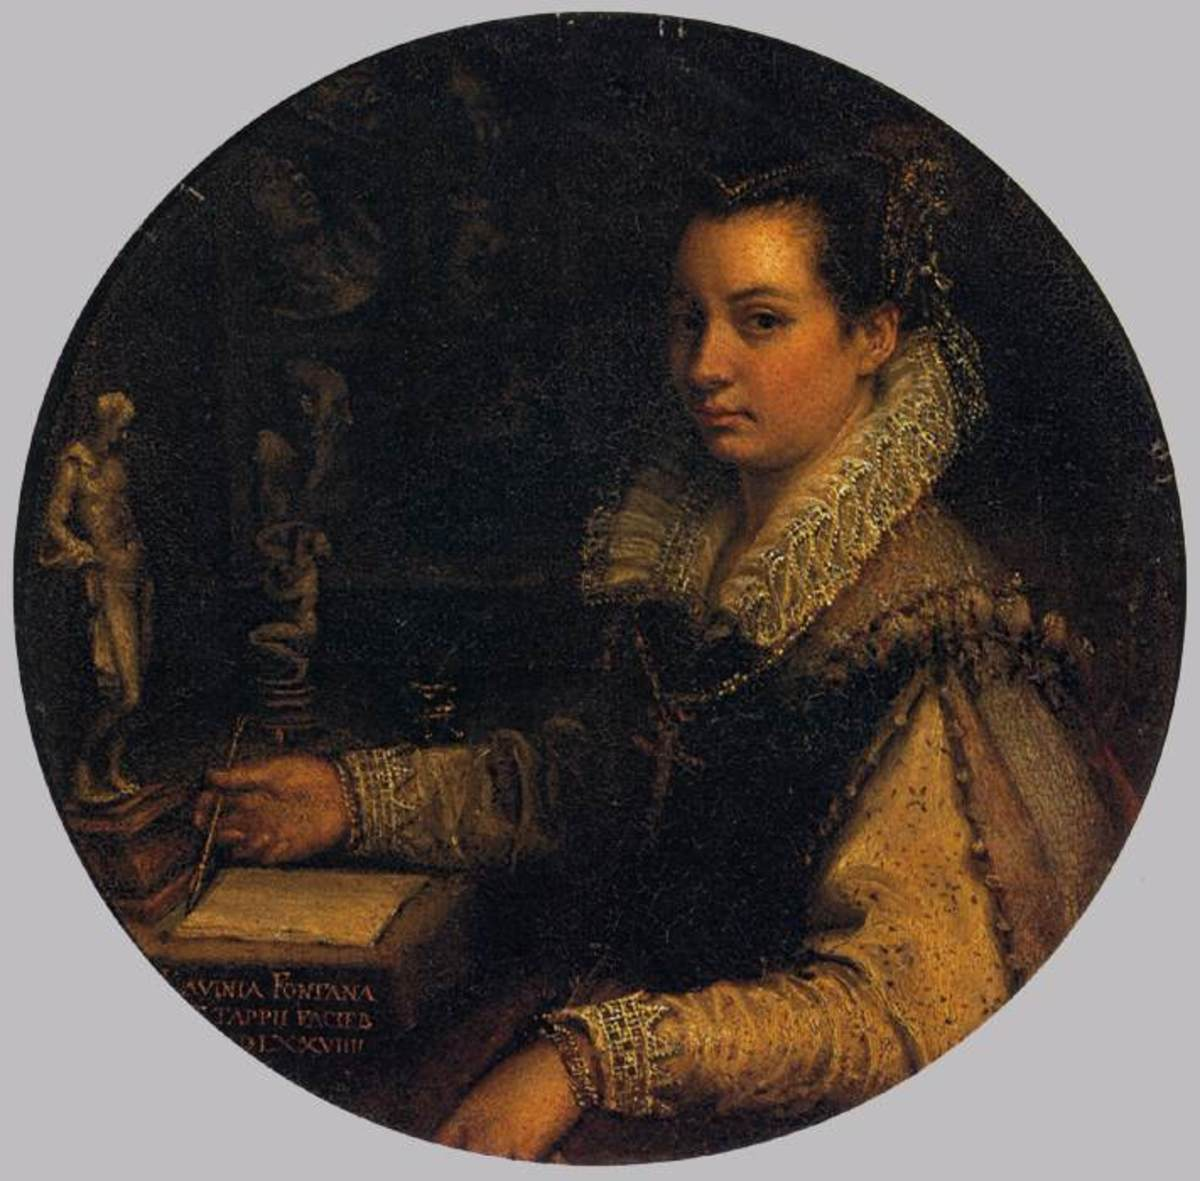 Lavinia Fontana, Woman Painter Between Renaissance and Mannerism